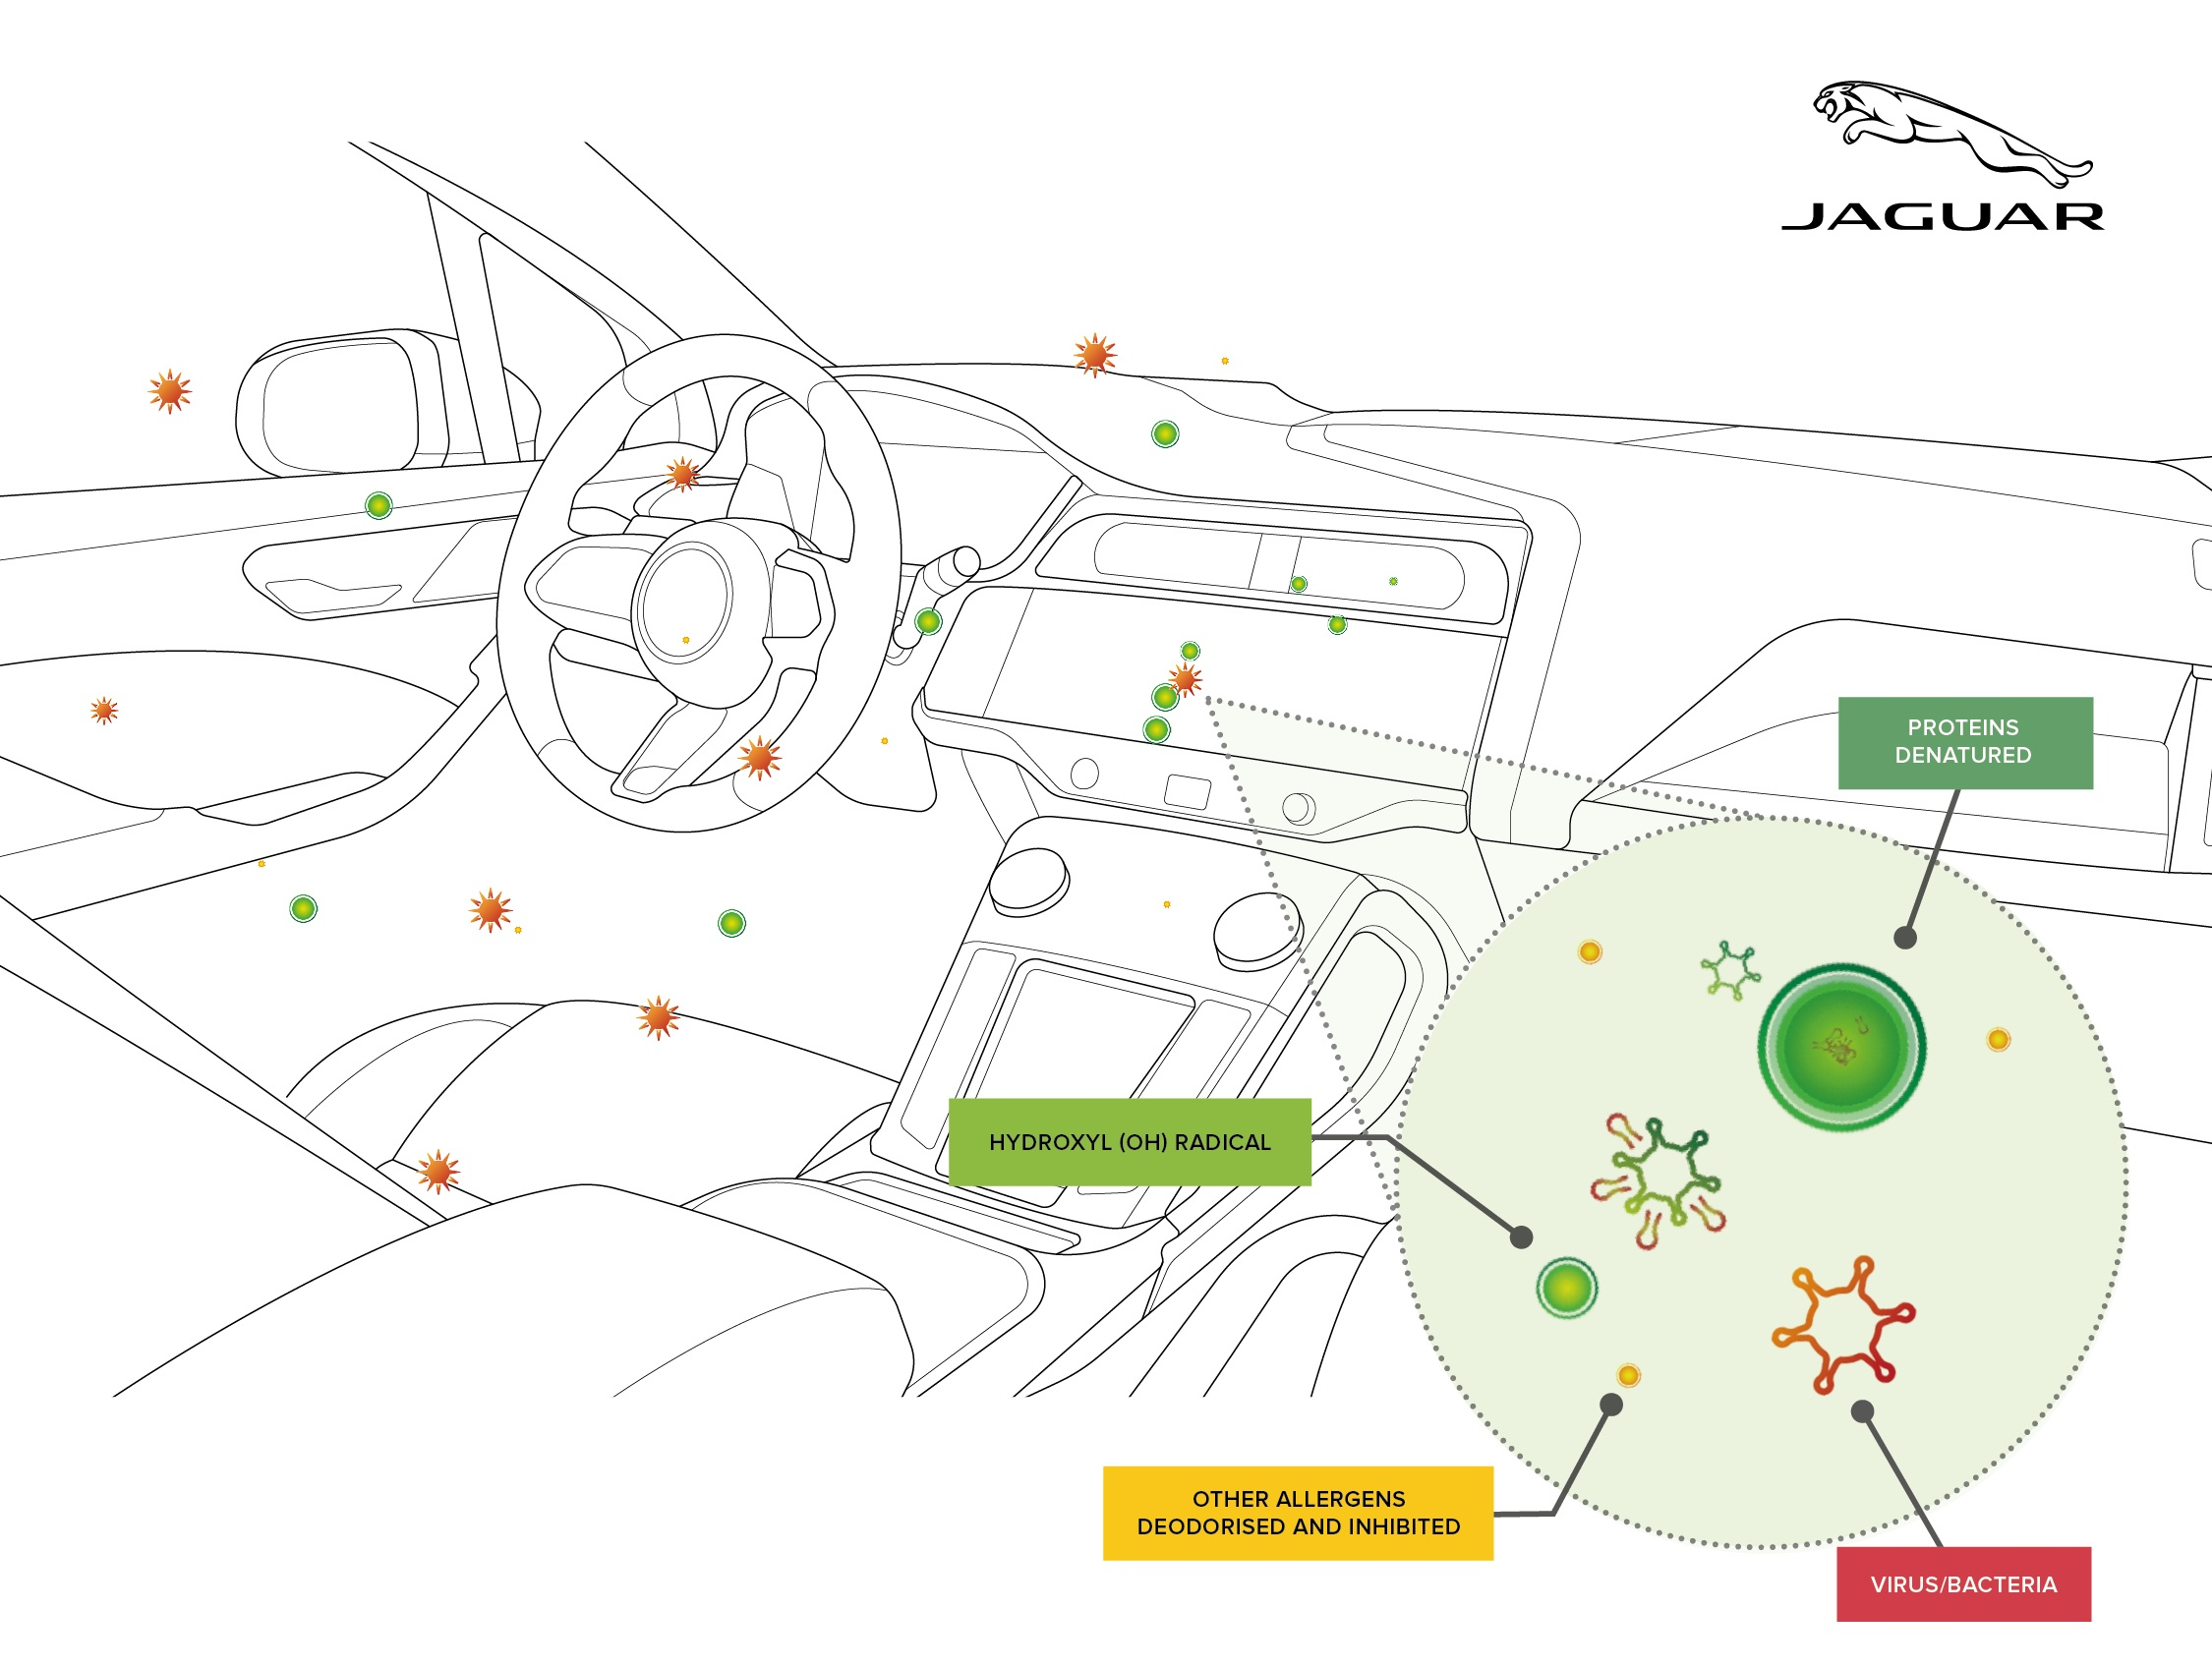 Jaguar land rover's future air purification technology proven to inhibit viruses and bacteria by up to 97 per cent